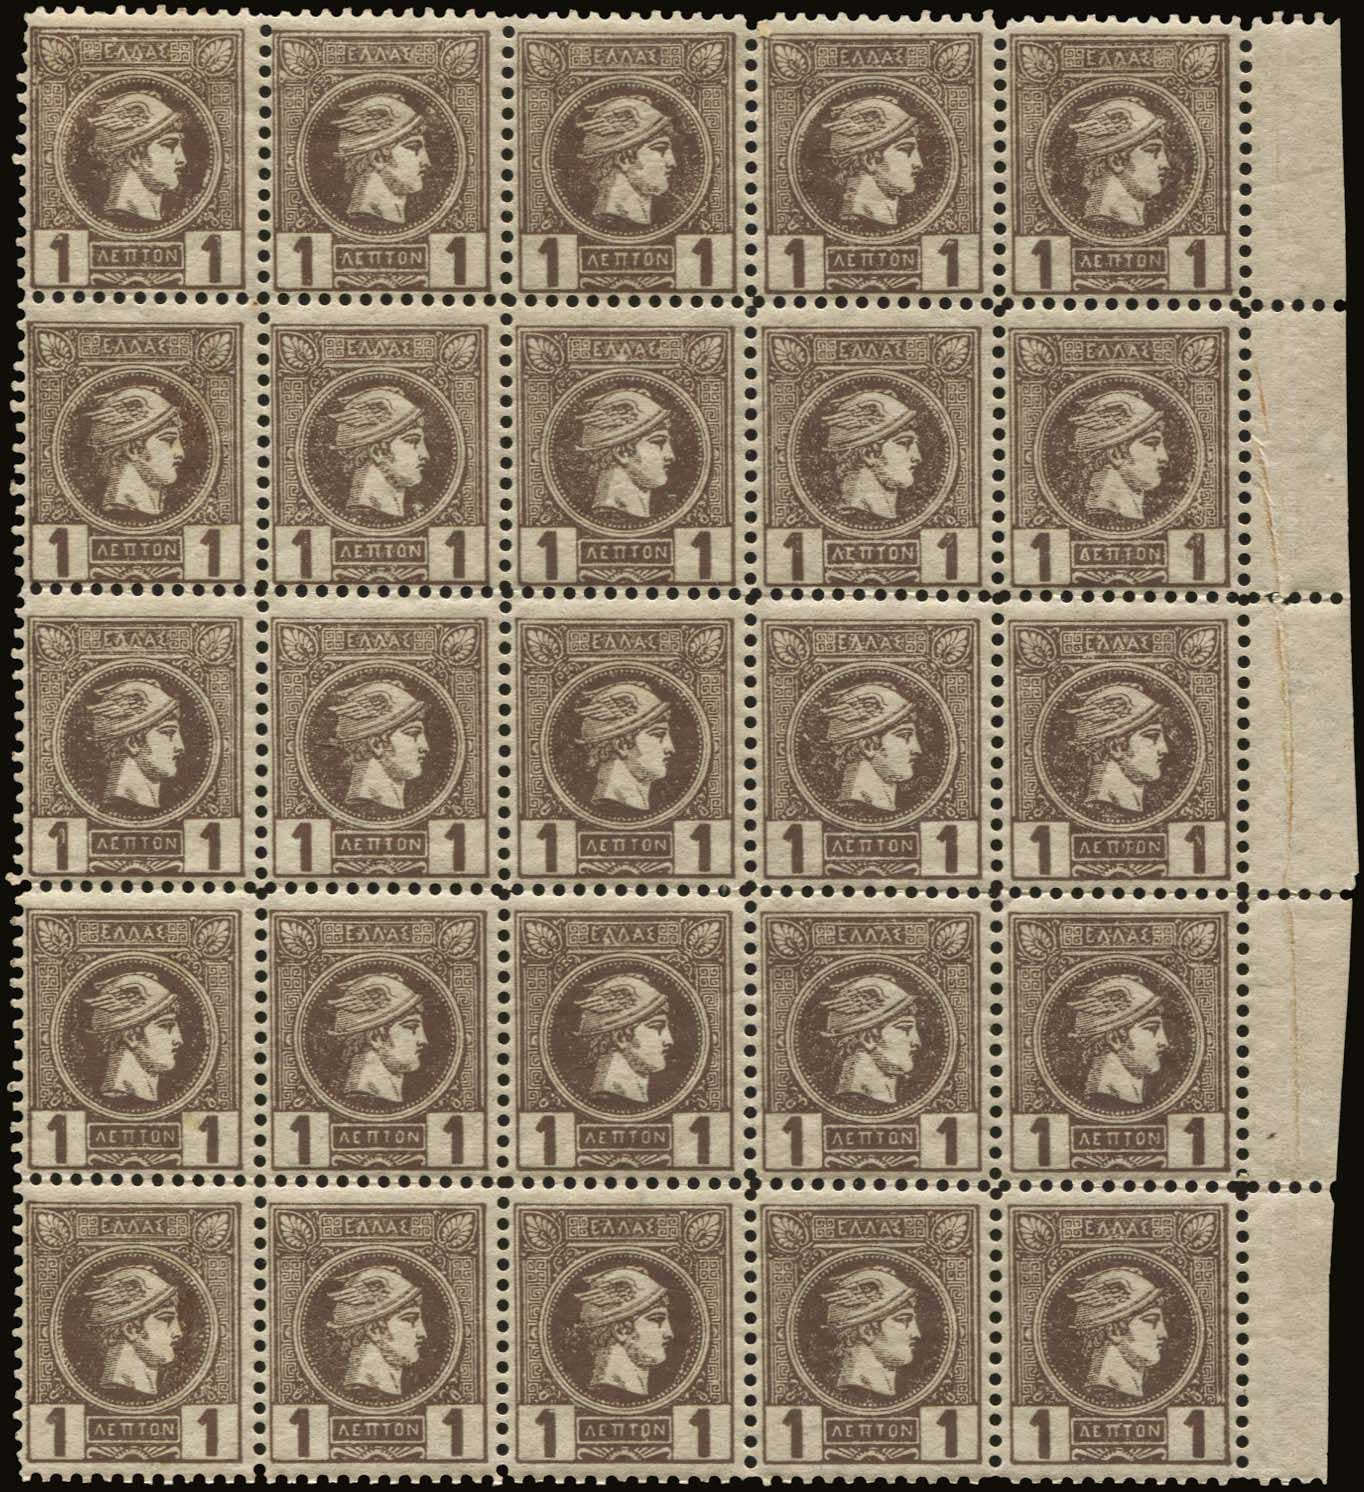 Lot 1020 - GREECE-  SMALL HERMES HEAD athens issues -  A. Karamitsos Public Auction 599 General Stamp Sale